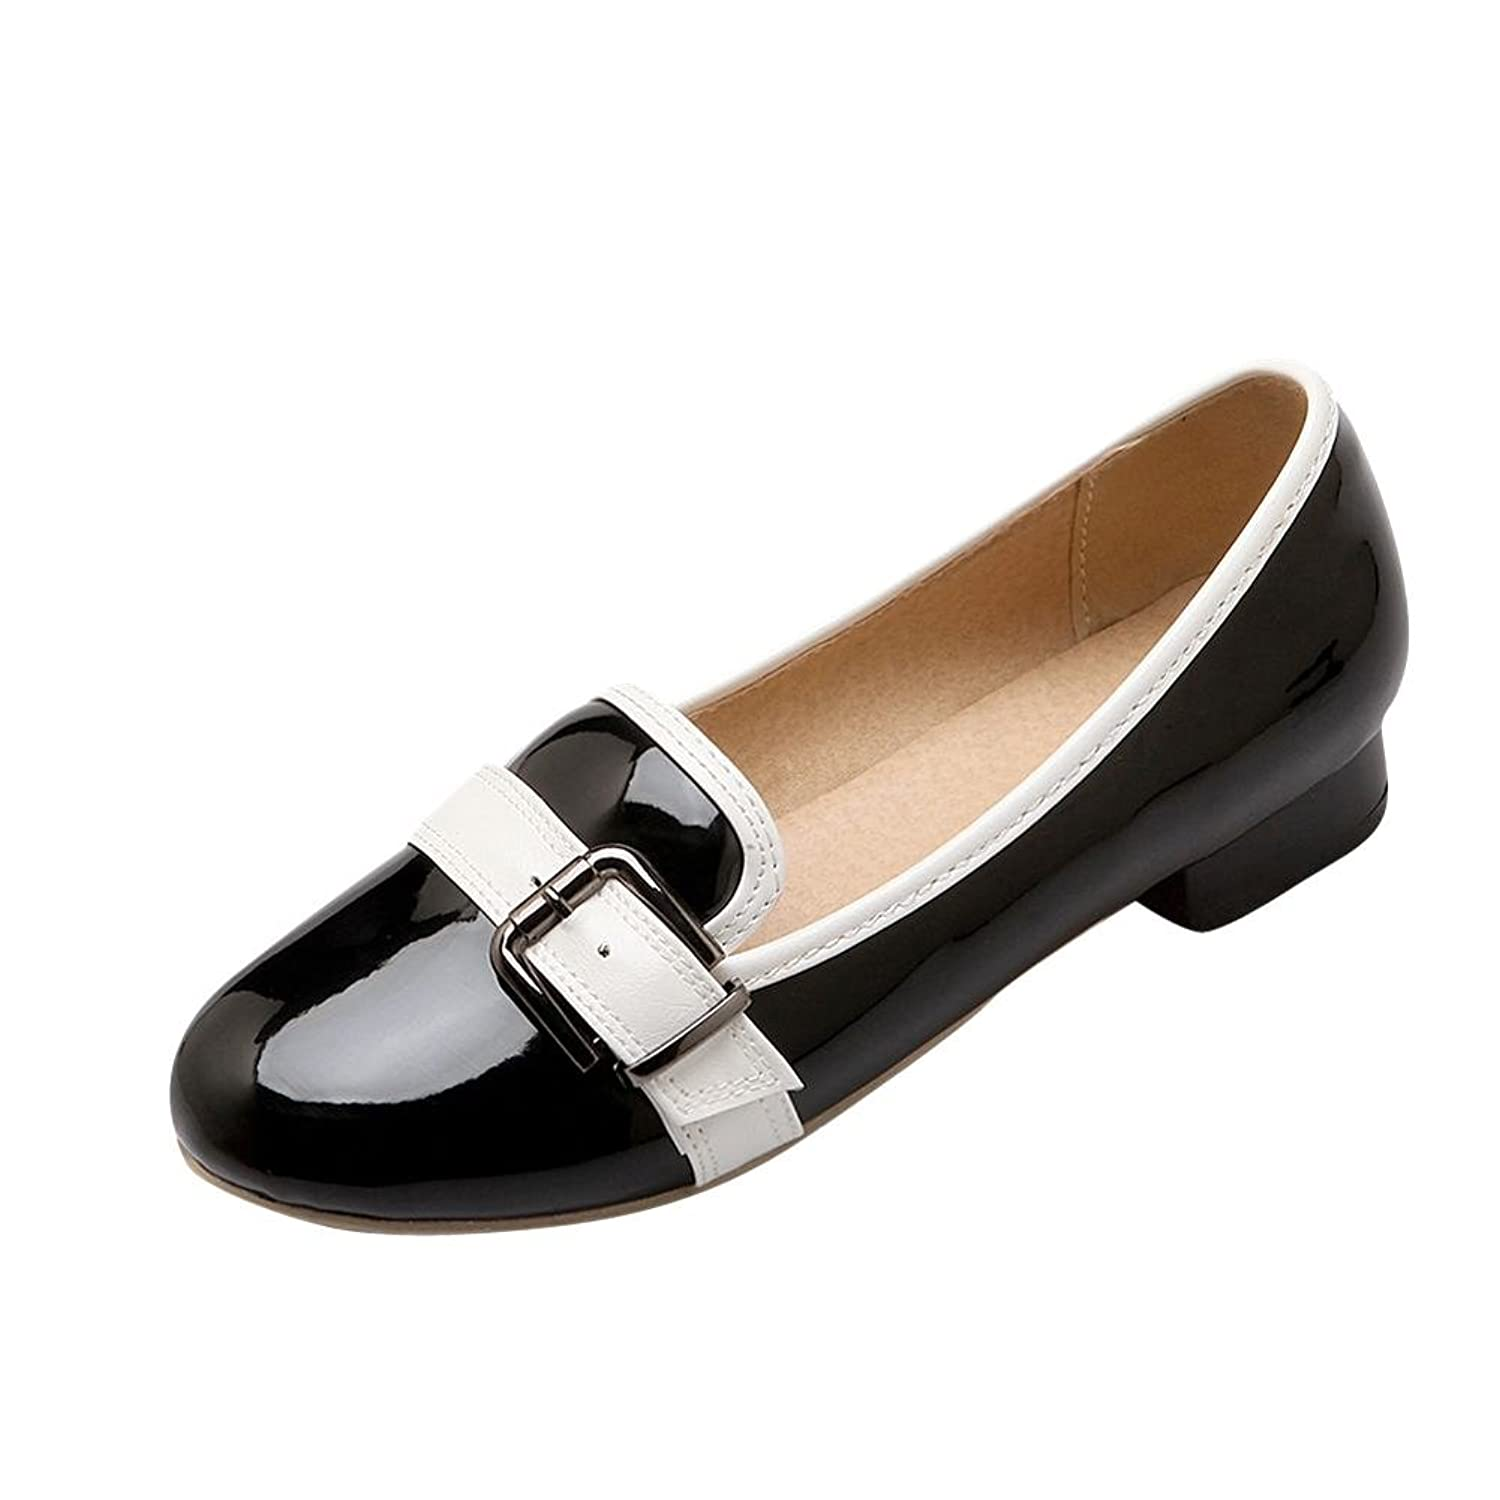 Carolbar Women's Buckle Patent Leather Fashion Comfort Low Heel Loafers Shoes